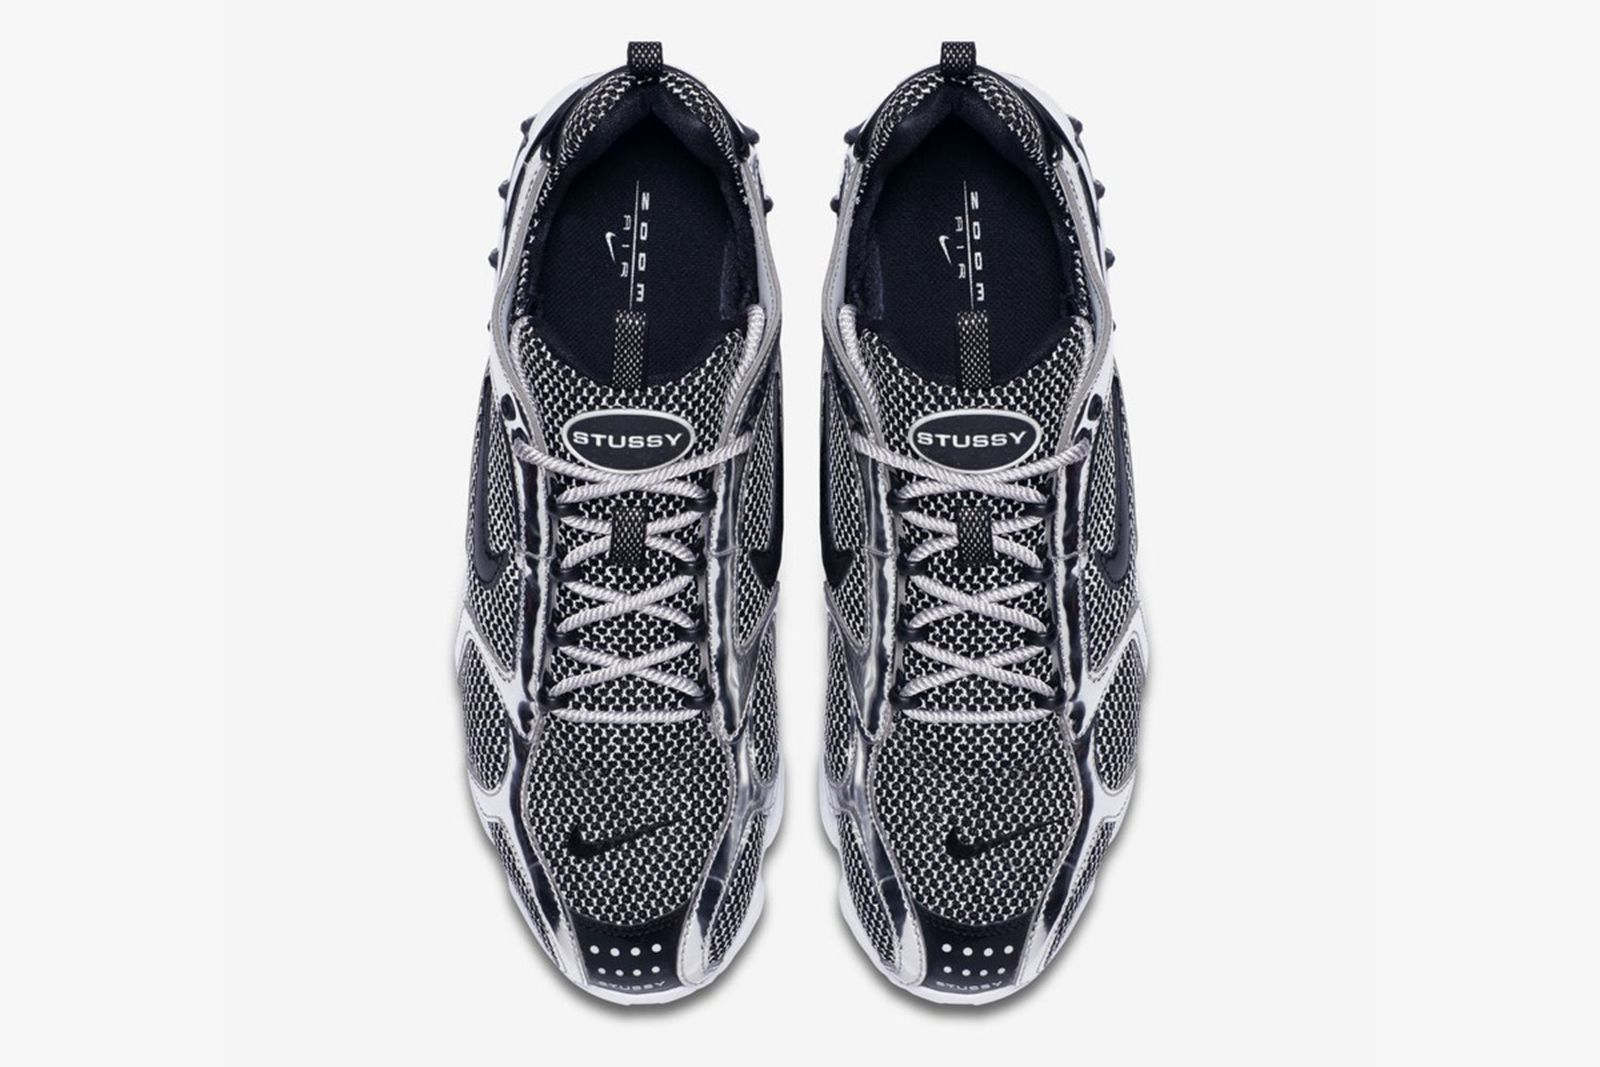 stussy-nike-zoom-spiridon-cage-2-release-date-price-07